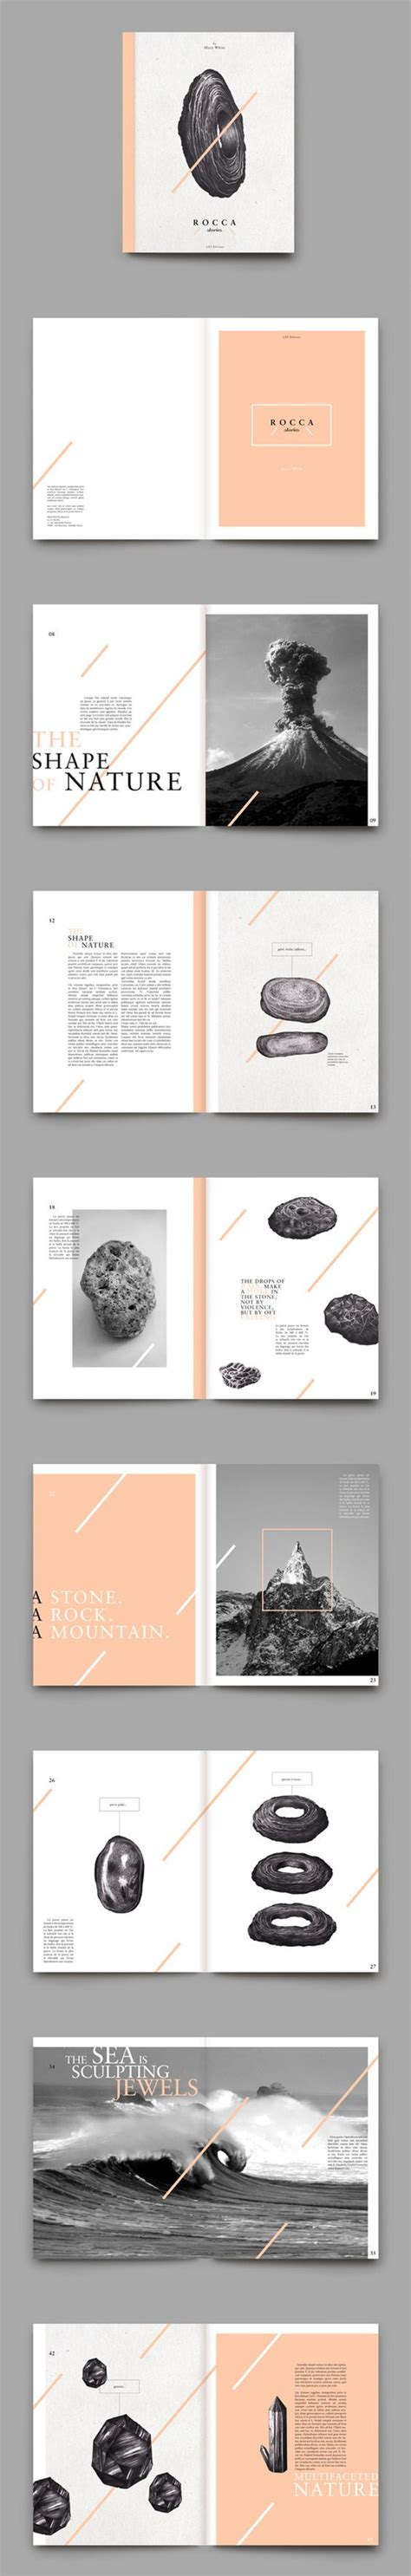 magazine layout design pinterest r o c c a stories magazine layout design b 225 rbaro 193 n